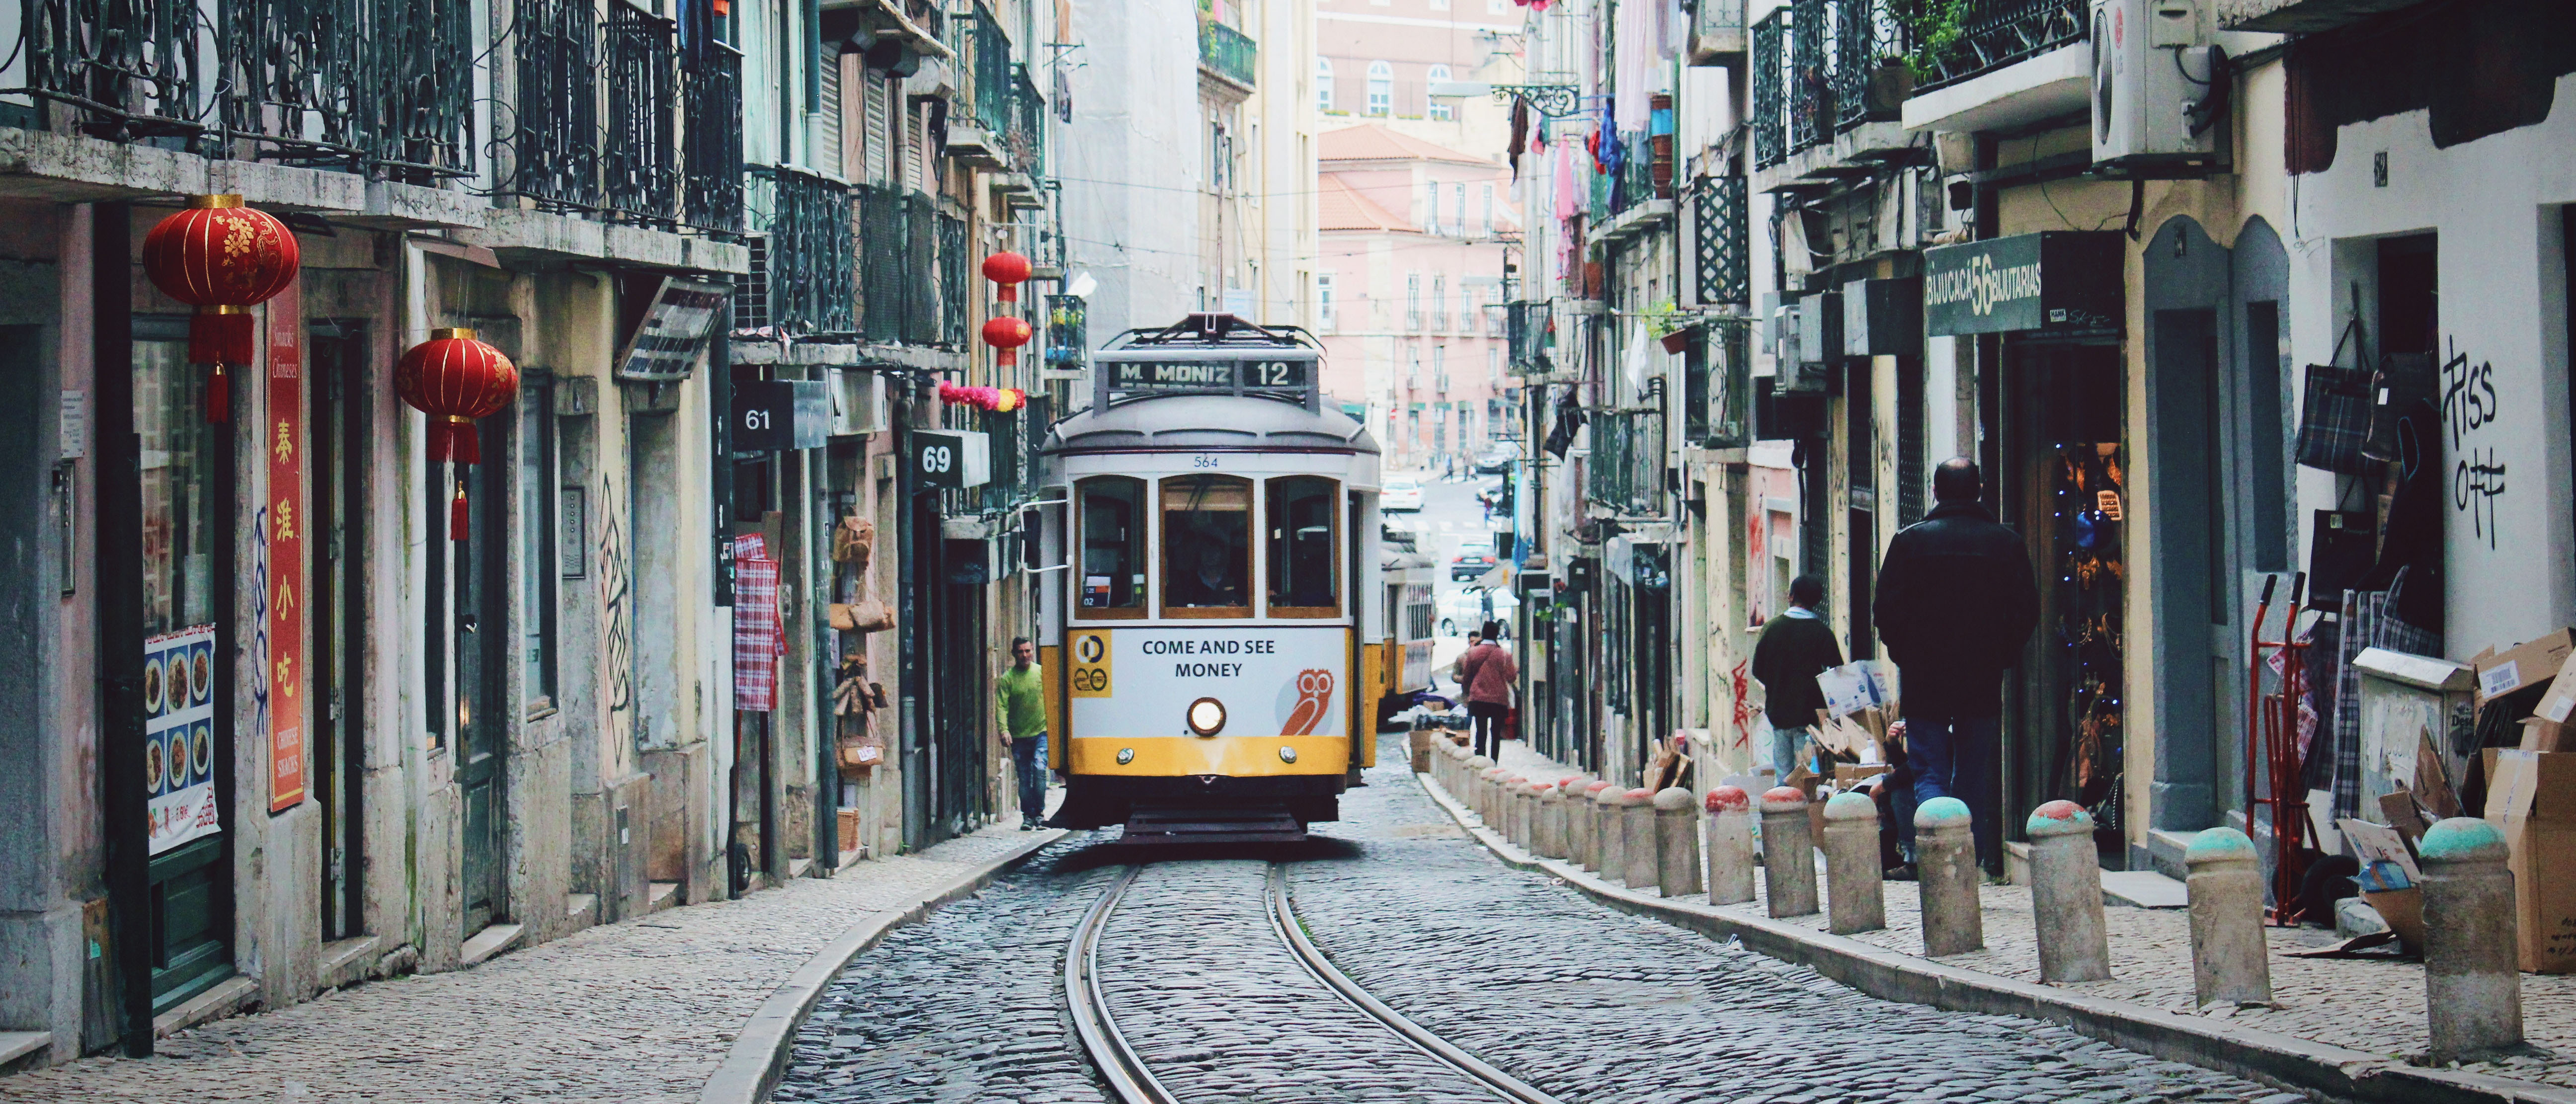 Portugal by Travel Information Europe